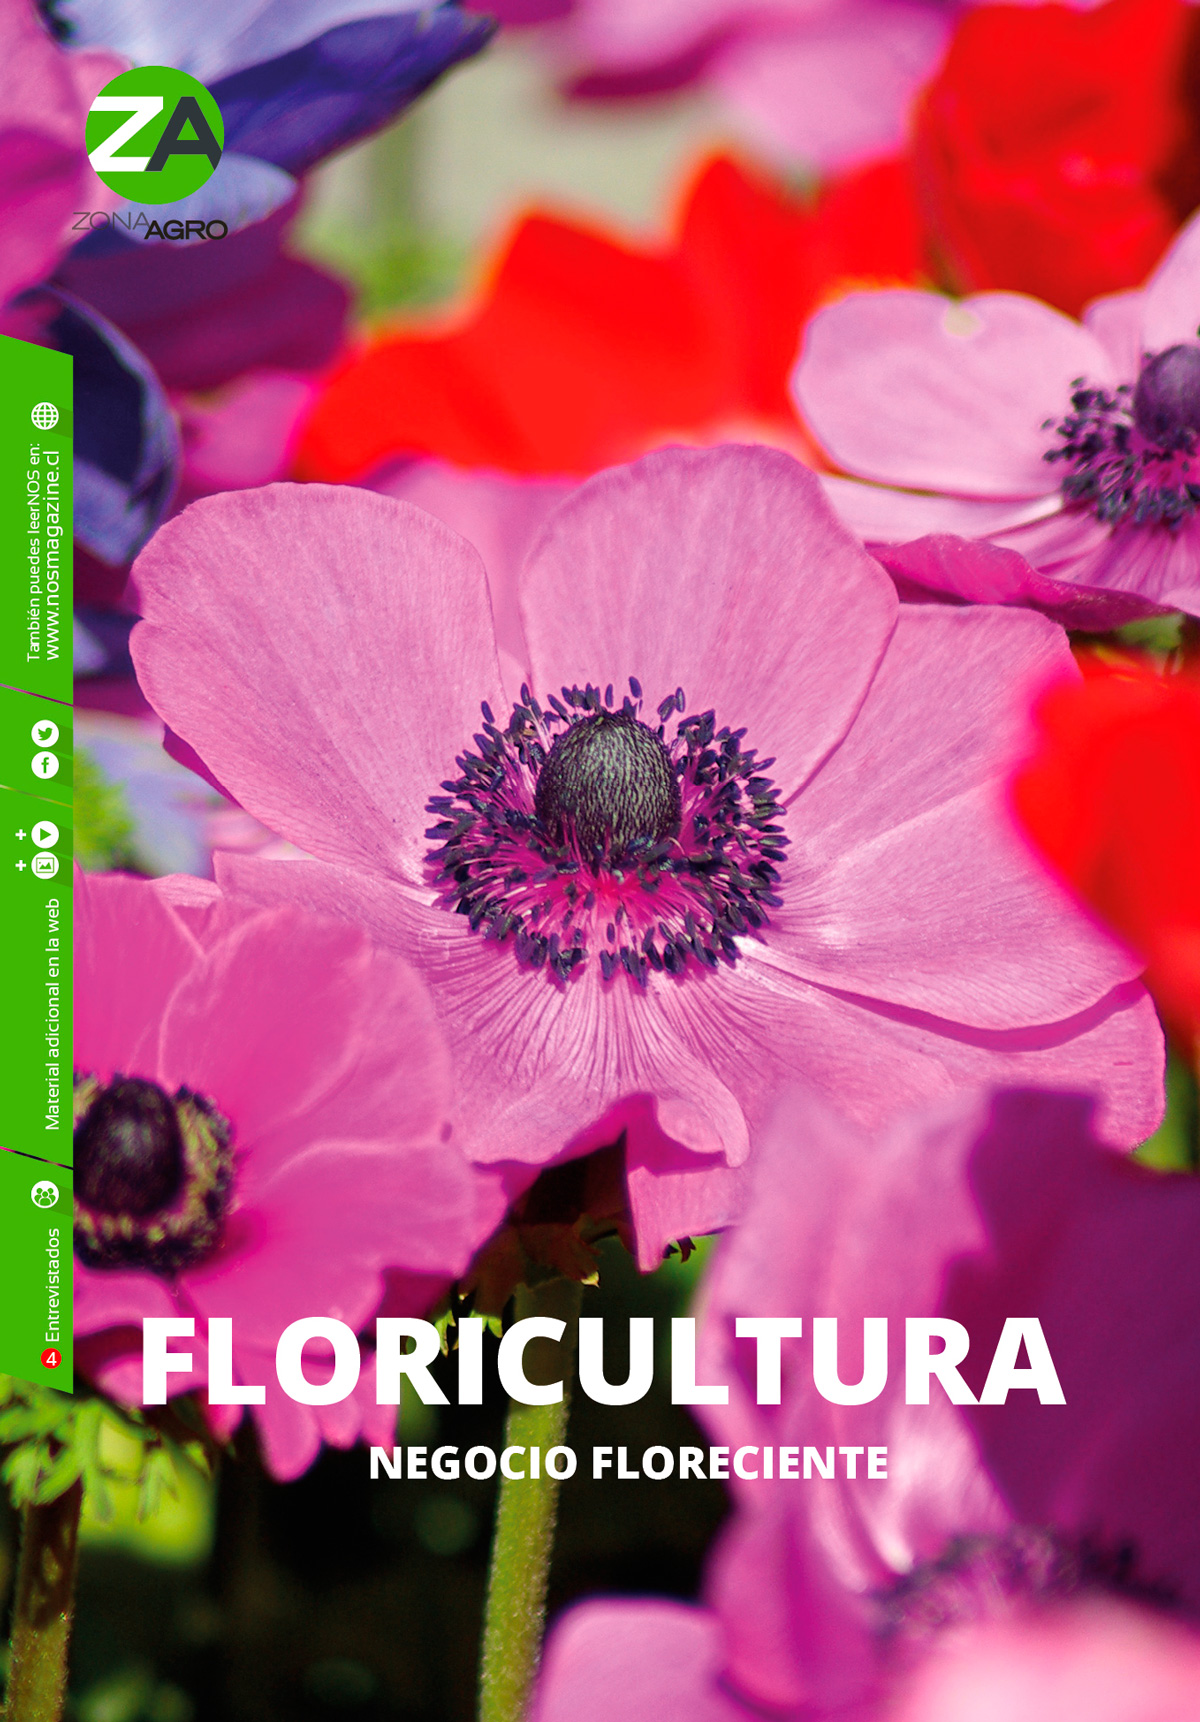 Photo of Floricultura. Negocio floreciente